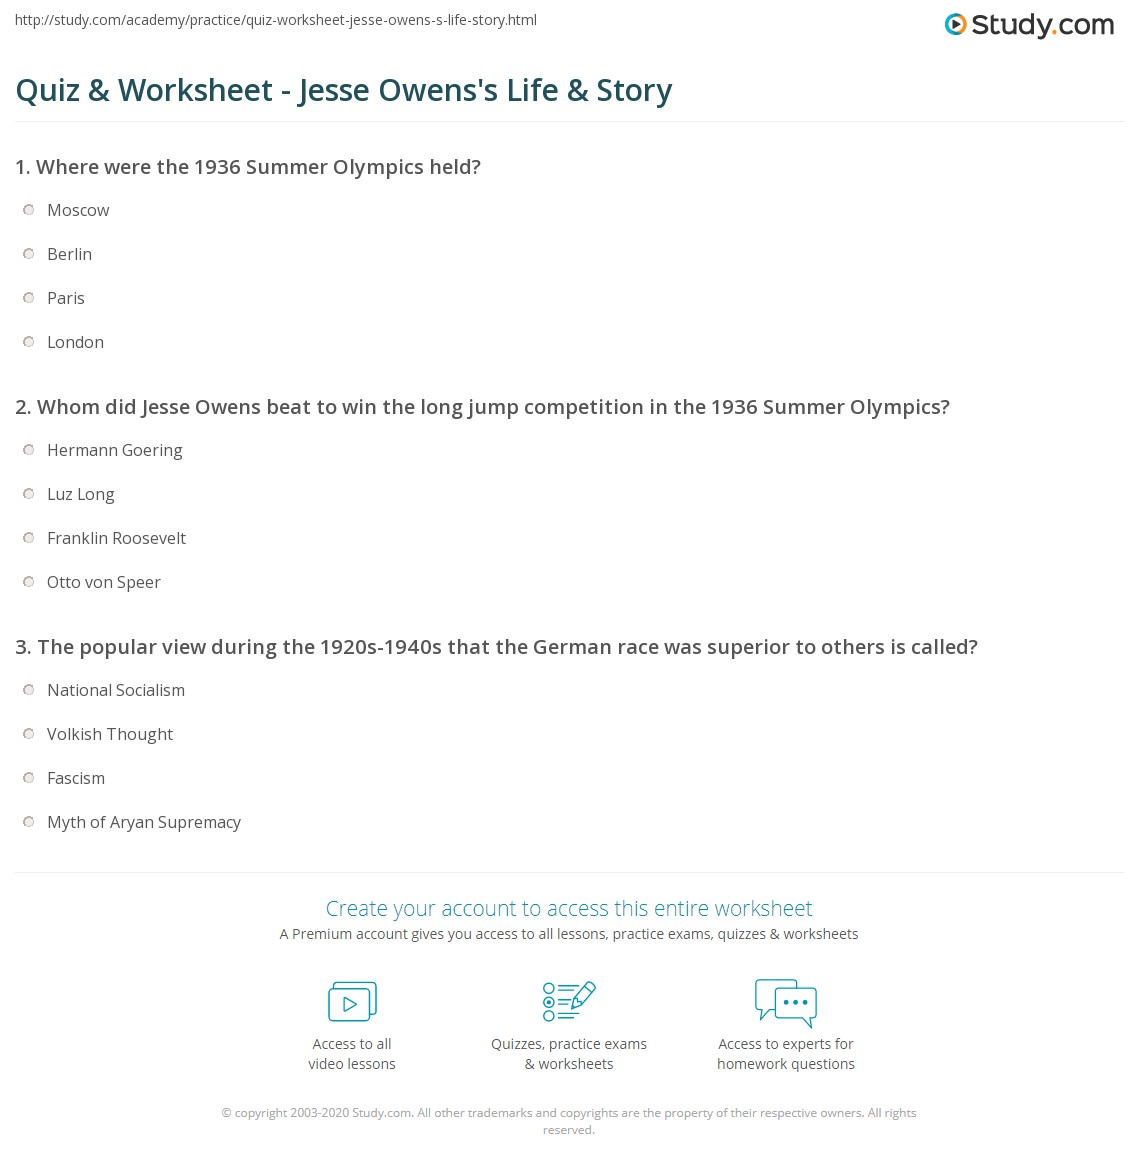 quiz worksheet jesse owens s life story com print jesse owens facts biography quotes worksheet